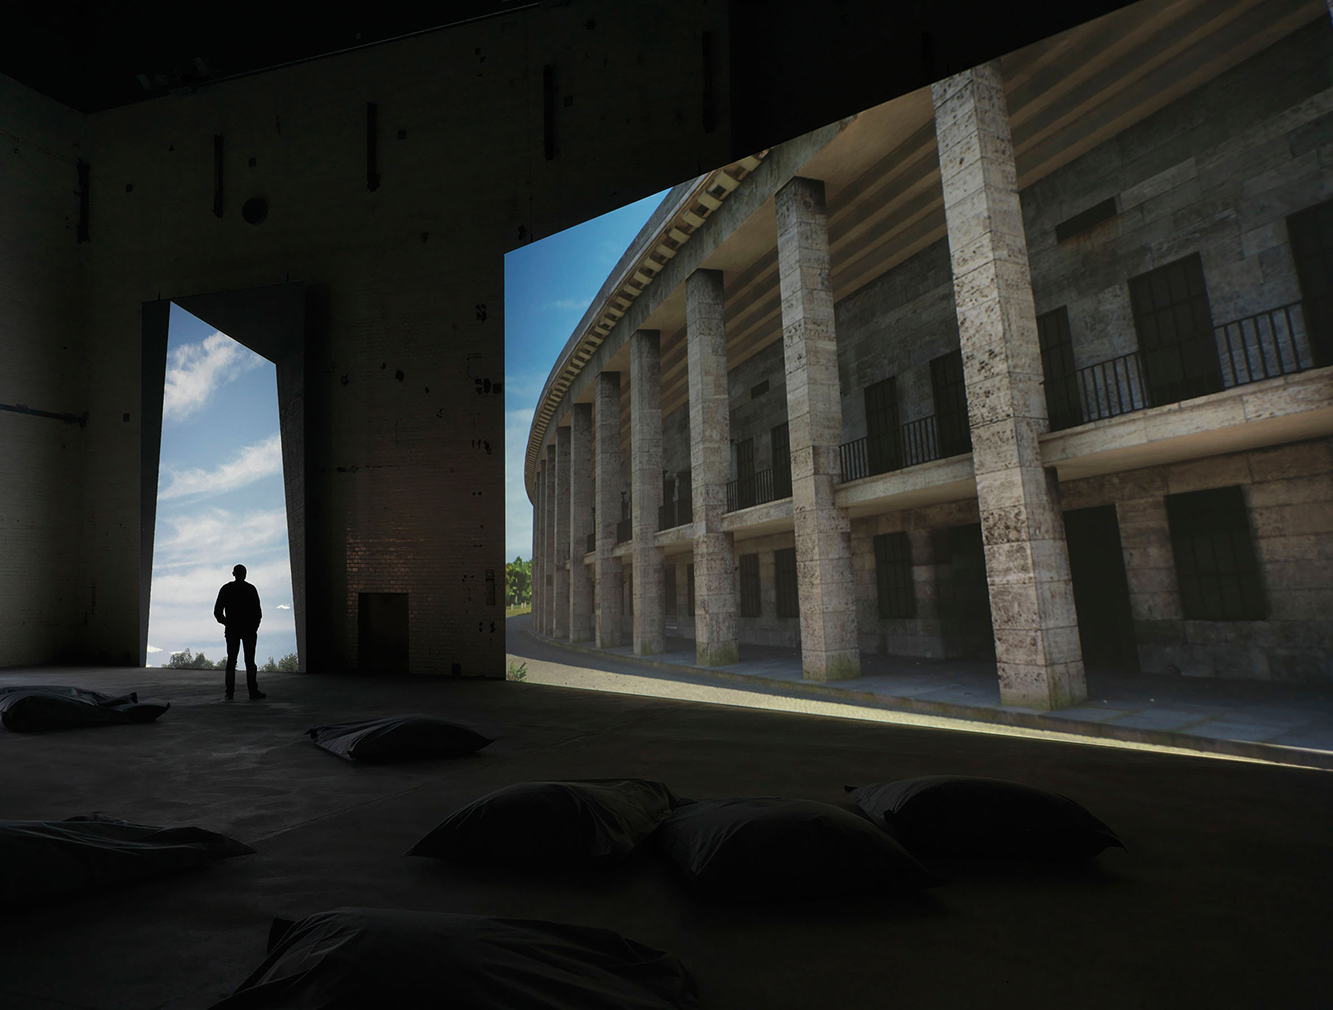 David Claerbout, 'Olympia', 2016. Real-time projection at KINDL's Boiler House. Photography: Jens Ziehe, Berlin, 2016 (c) David Claerbout / VG BILD-KUNST, Bonn, 2016